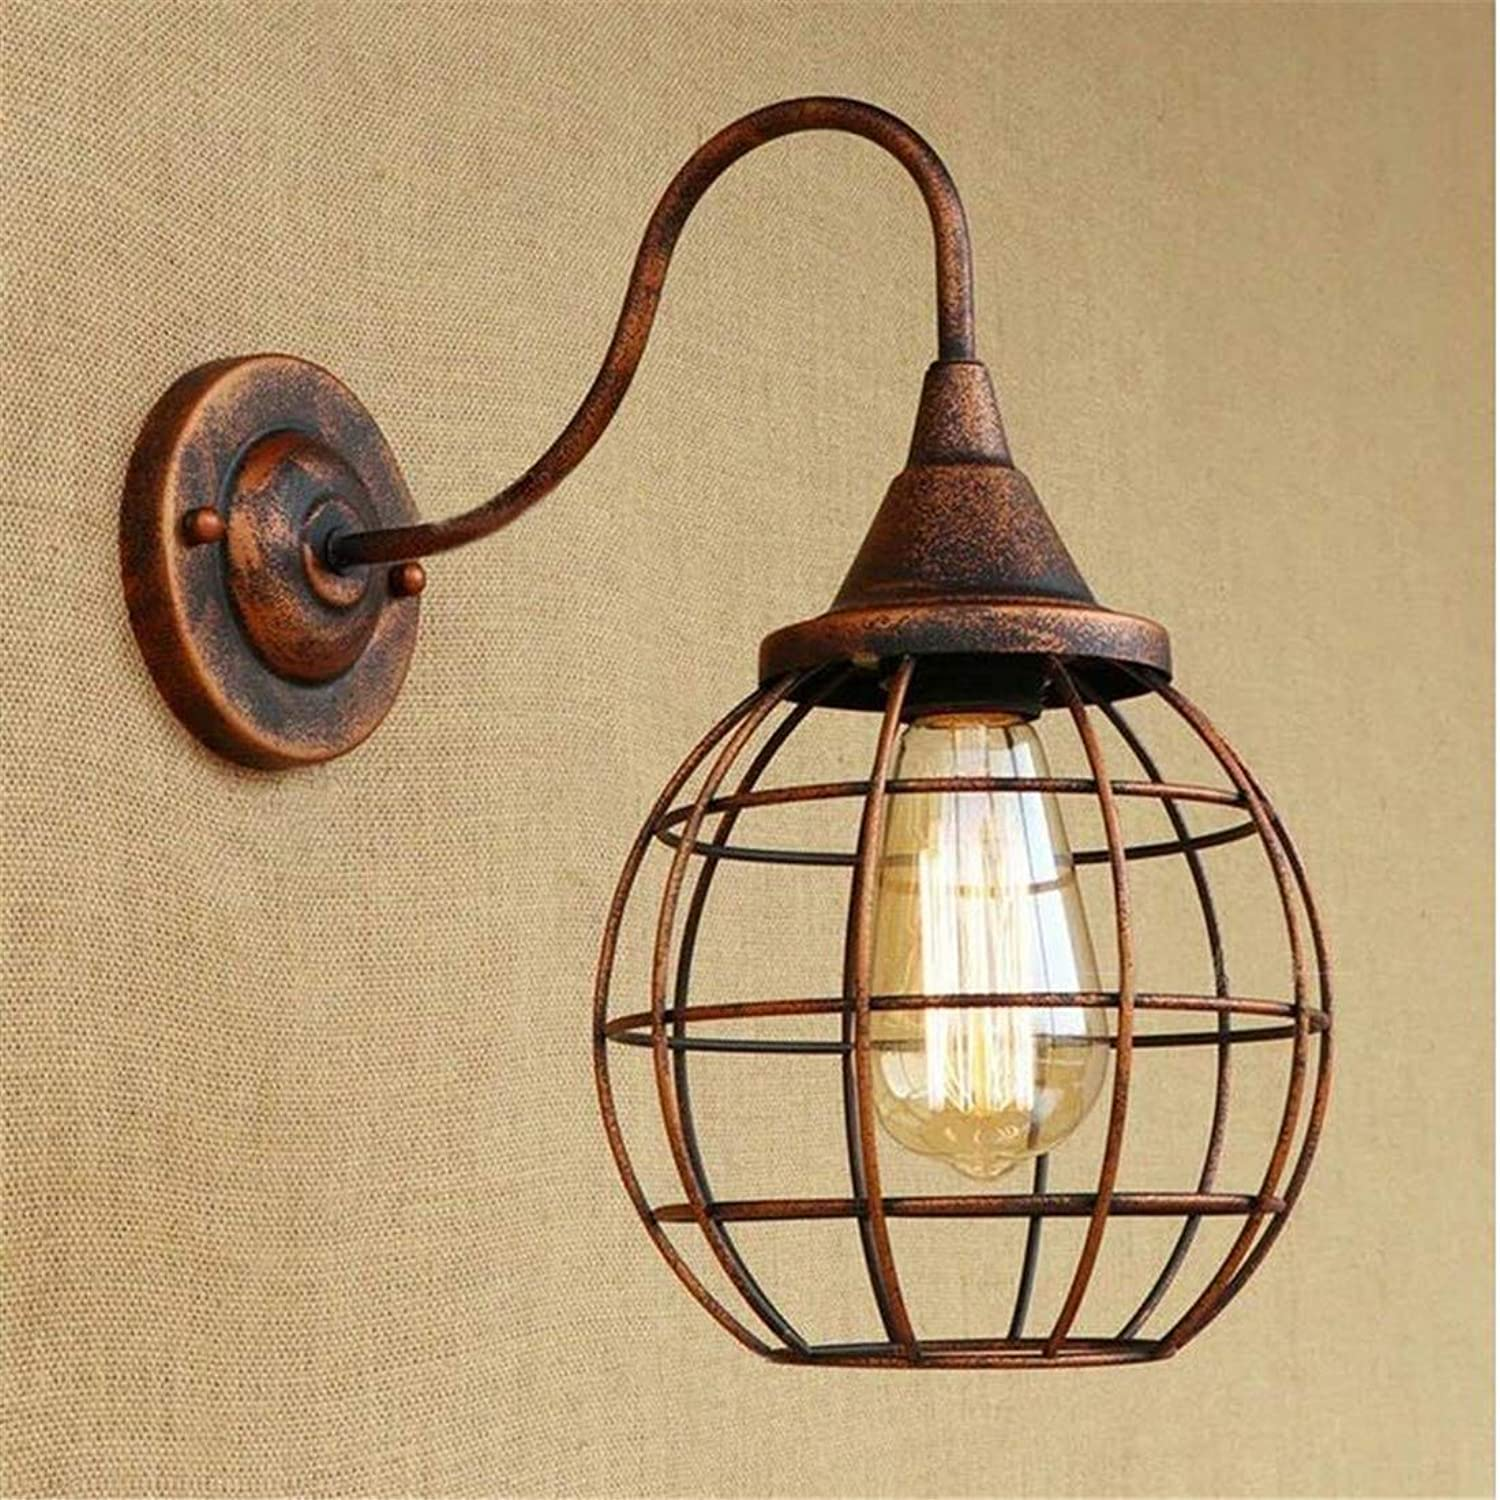 Led Wandleuchte Kronleuchterled Wall Light Chandelierwall Light Industrial Style With Wrought-Iron Lamp